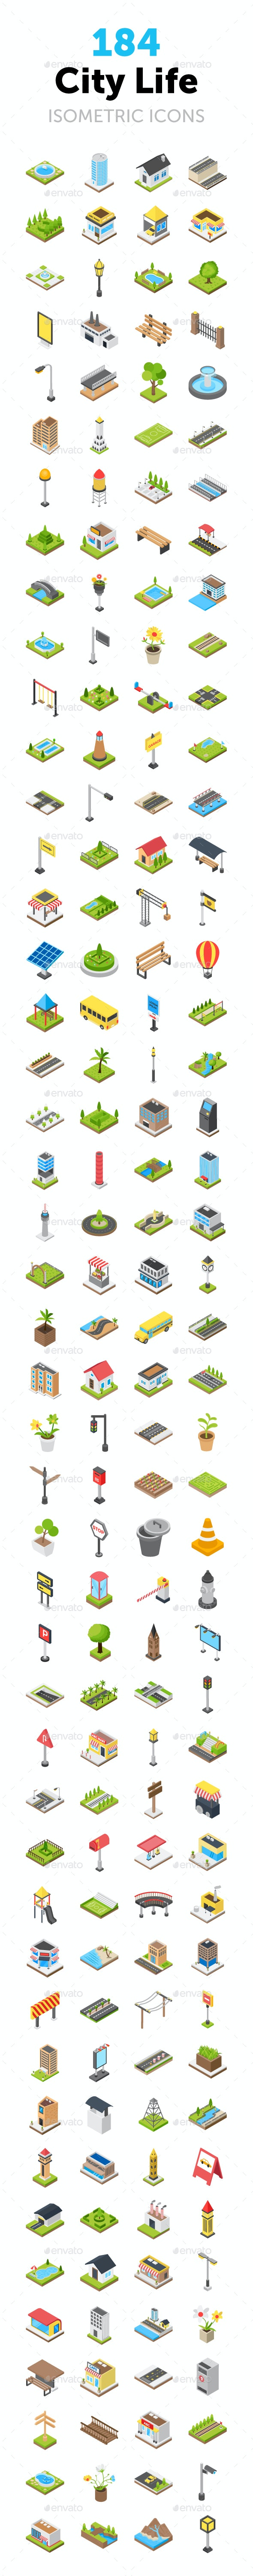 184 City Life Isometric Icons - Icons